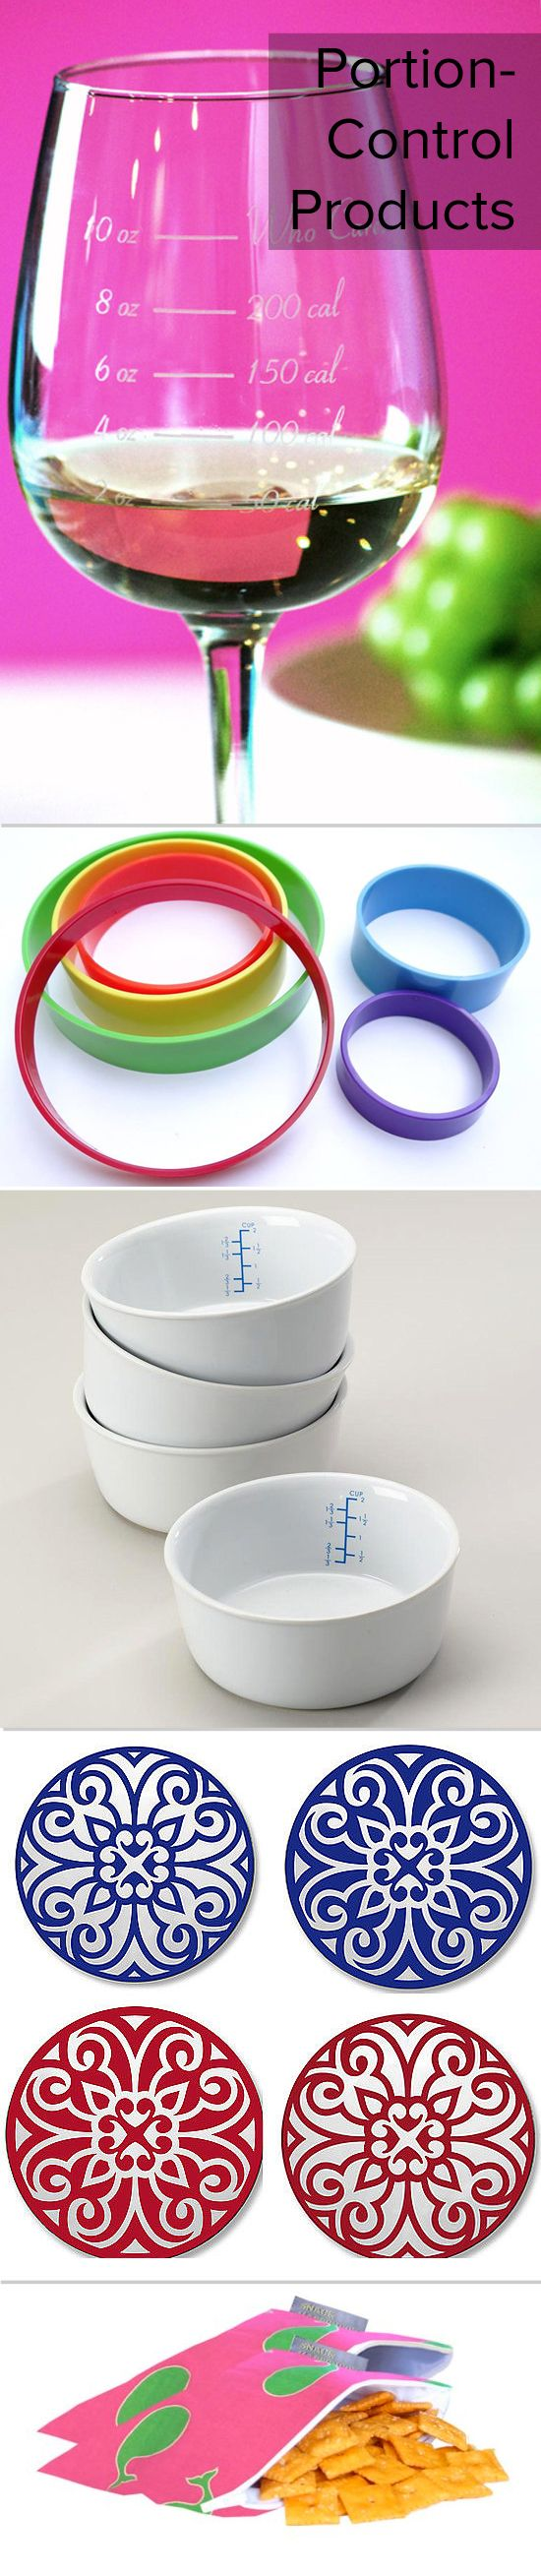 I really want the first and third items!!  Keep portions under control with these cute kitchen products